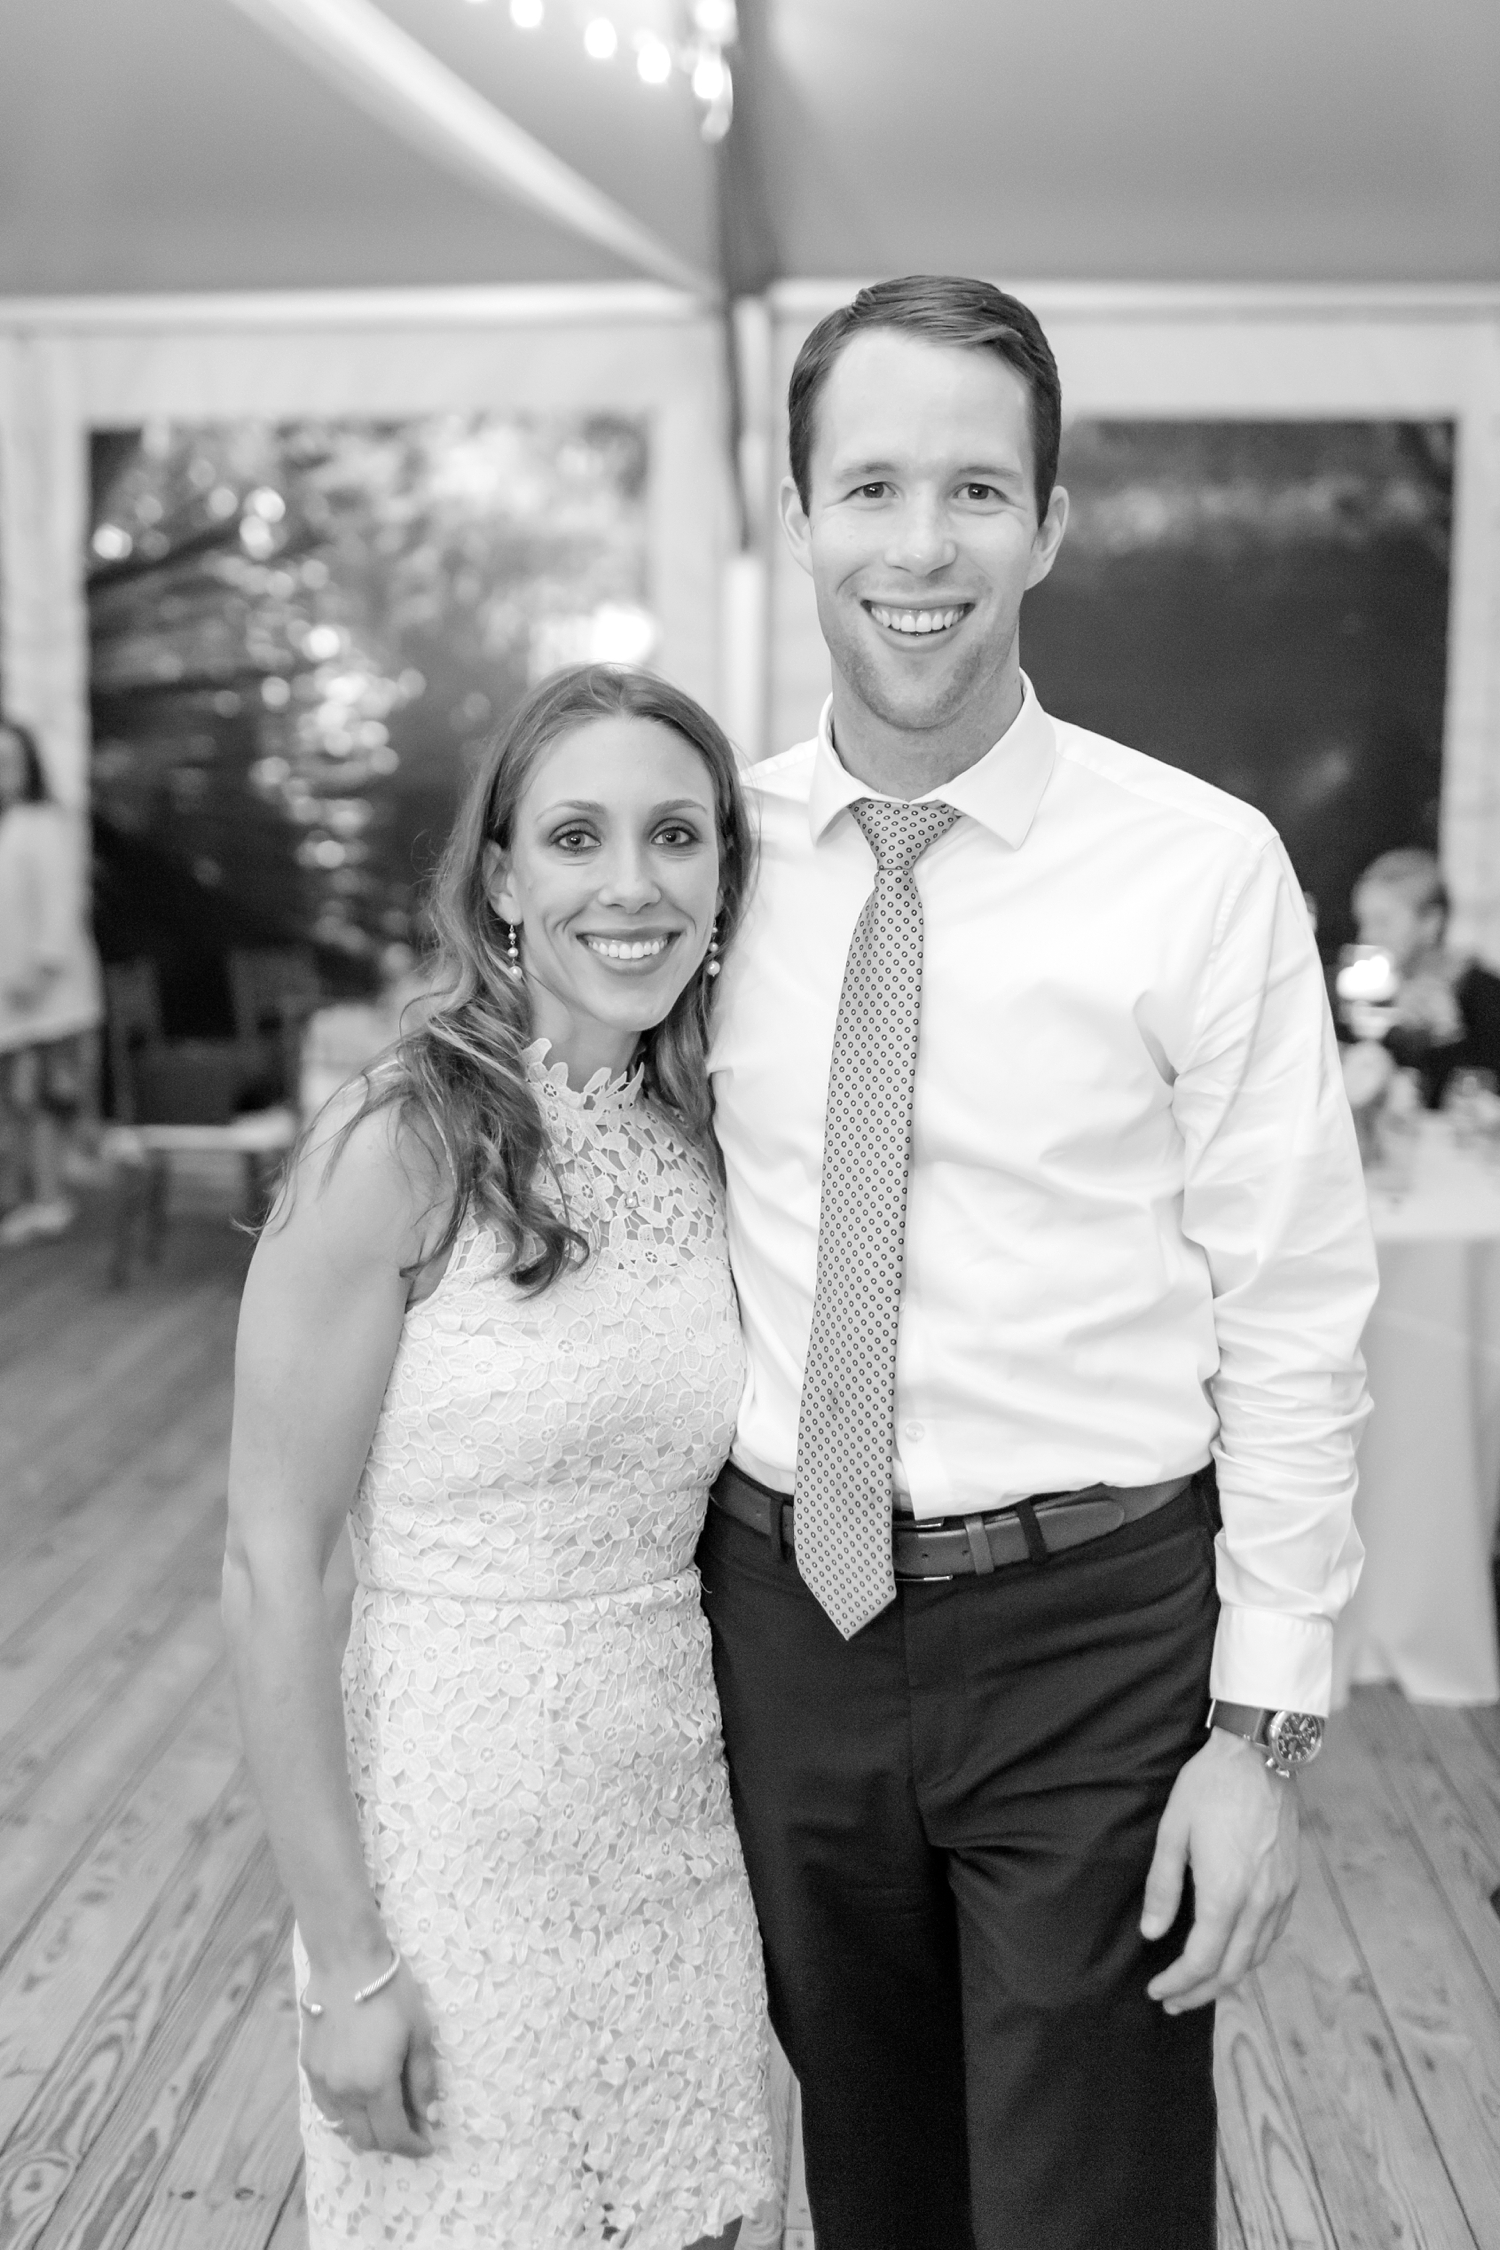 SO EXCITED to shoot your wedding next summer Emily & Brian!!